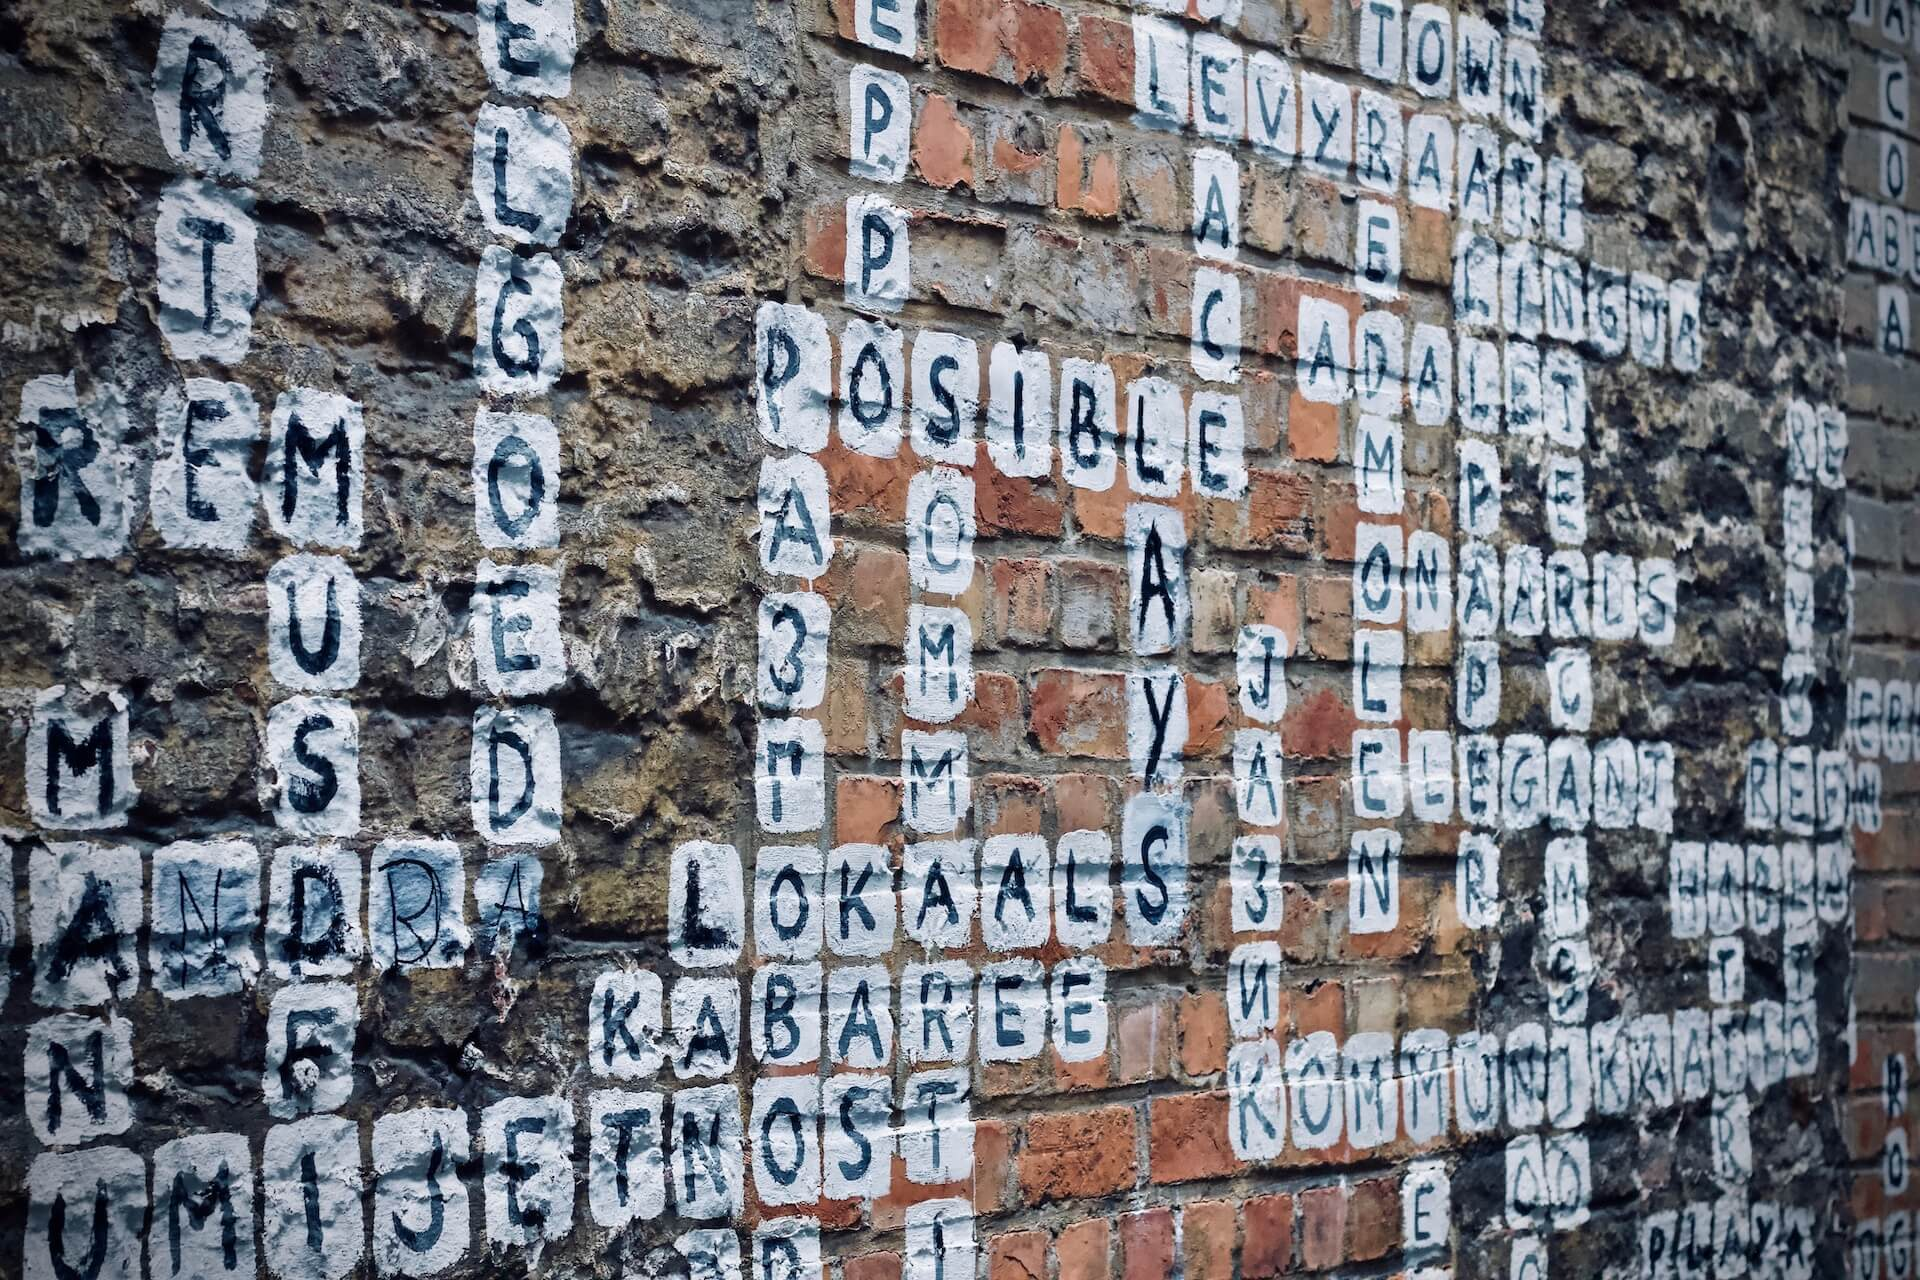 Crossword Puzzle on Wall